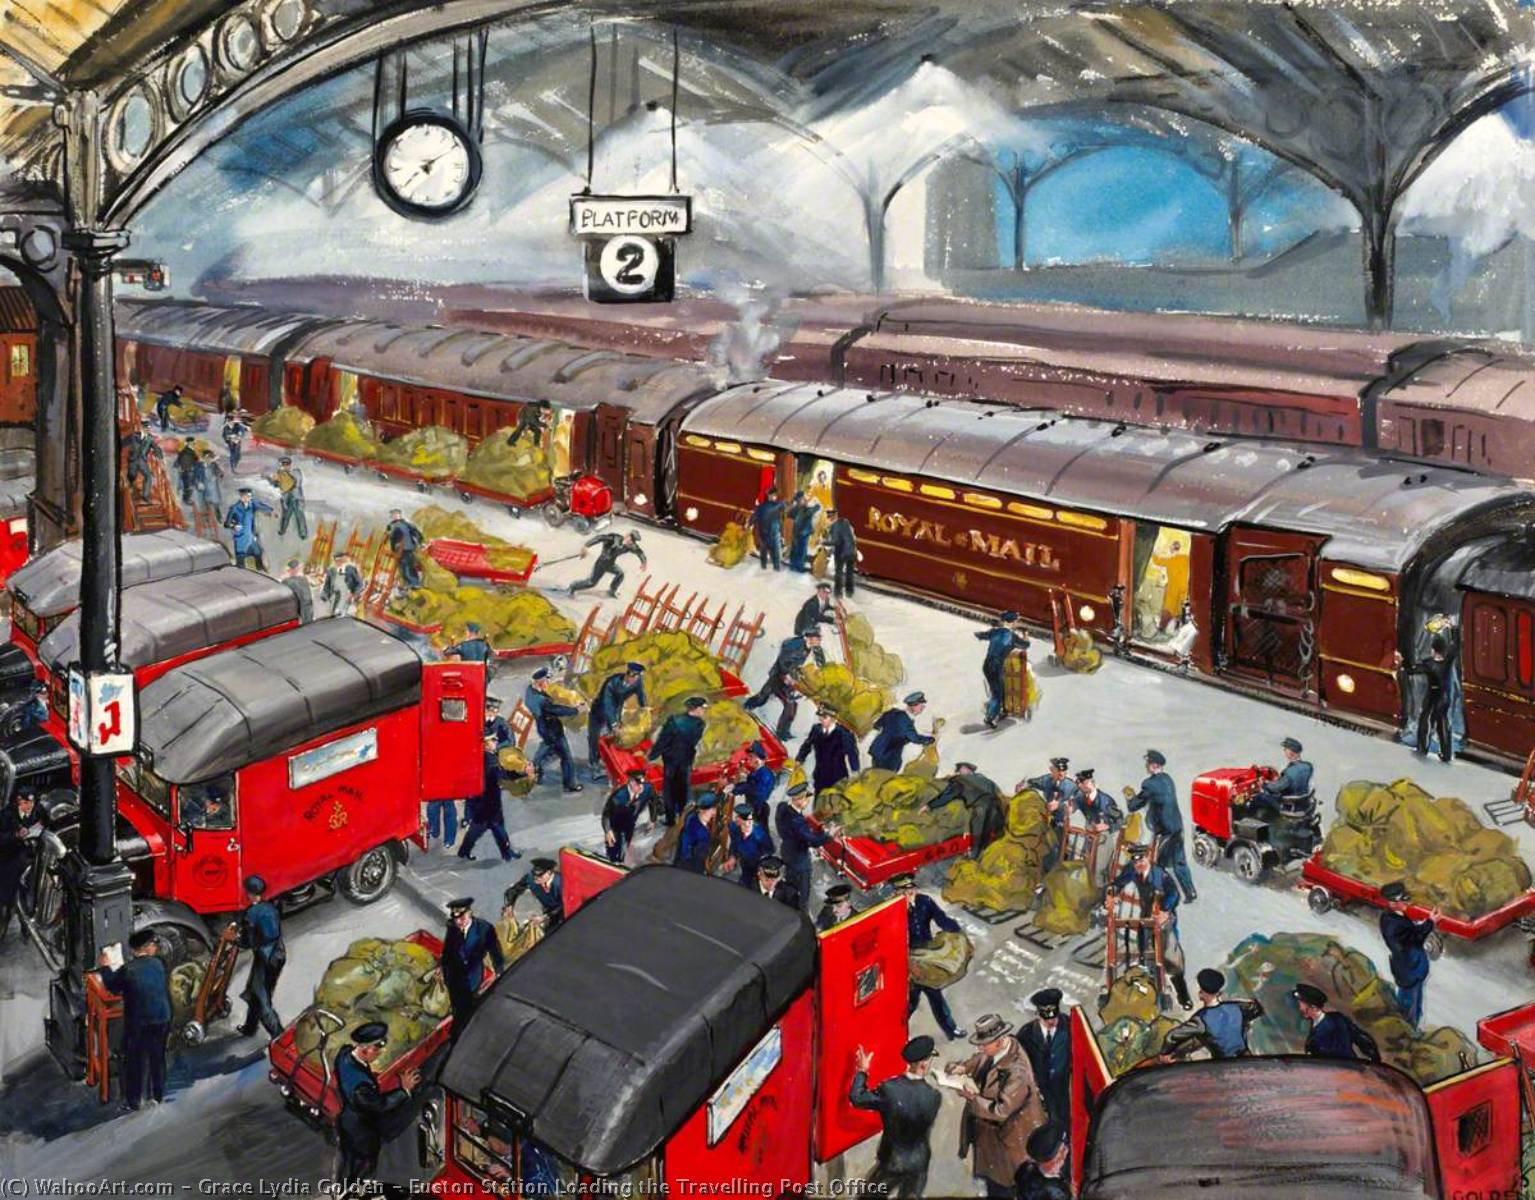 Wikioo.org - The Encyclopedia of Fine Arts - Painting, Artwork by Grace Lydia Golden - Euston Station Loading the Travelling Post Office